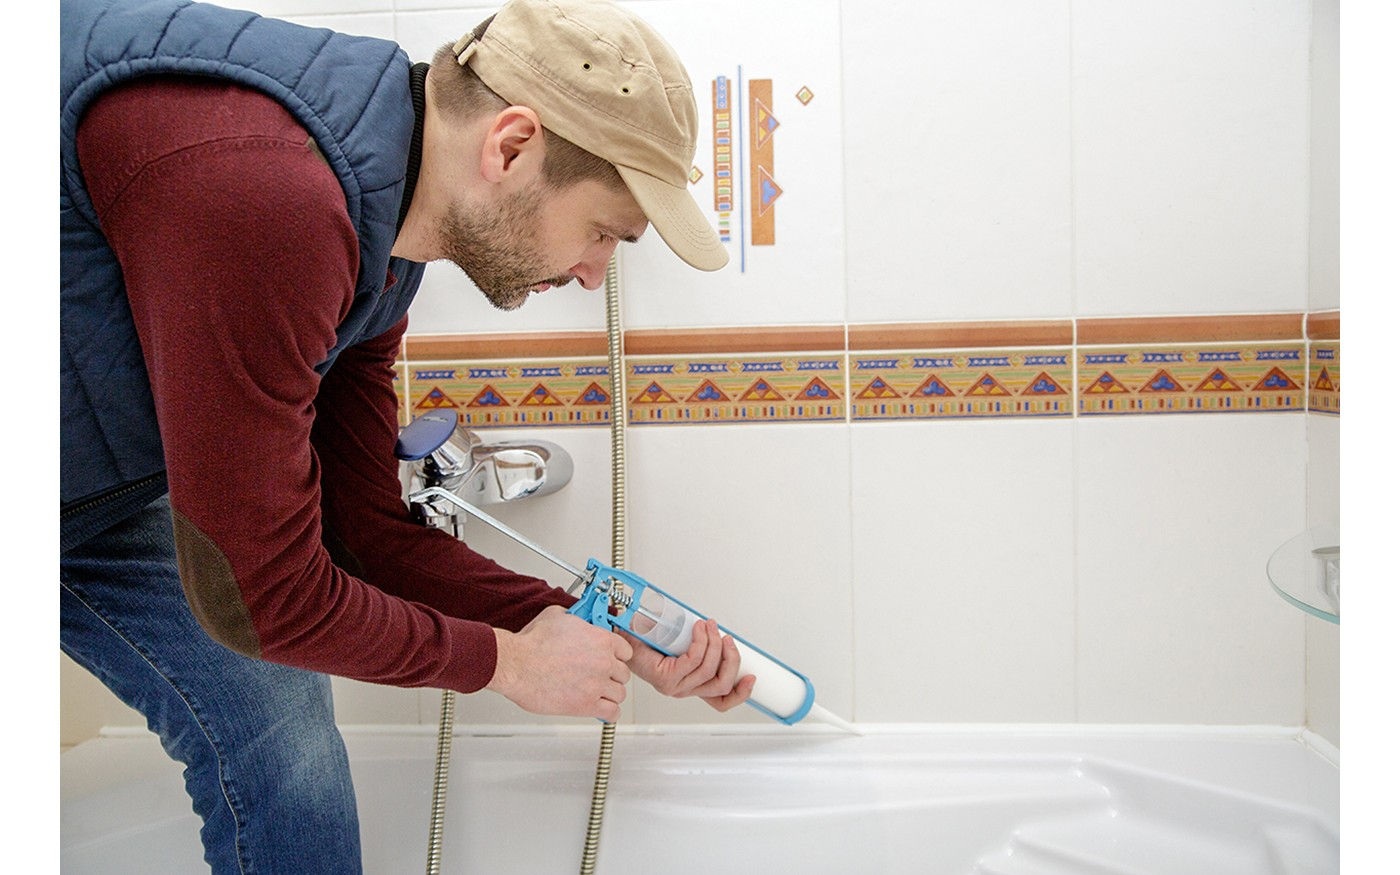 Caulking being applied to a white bathtub in a clean room